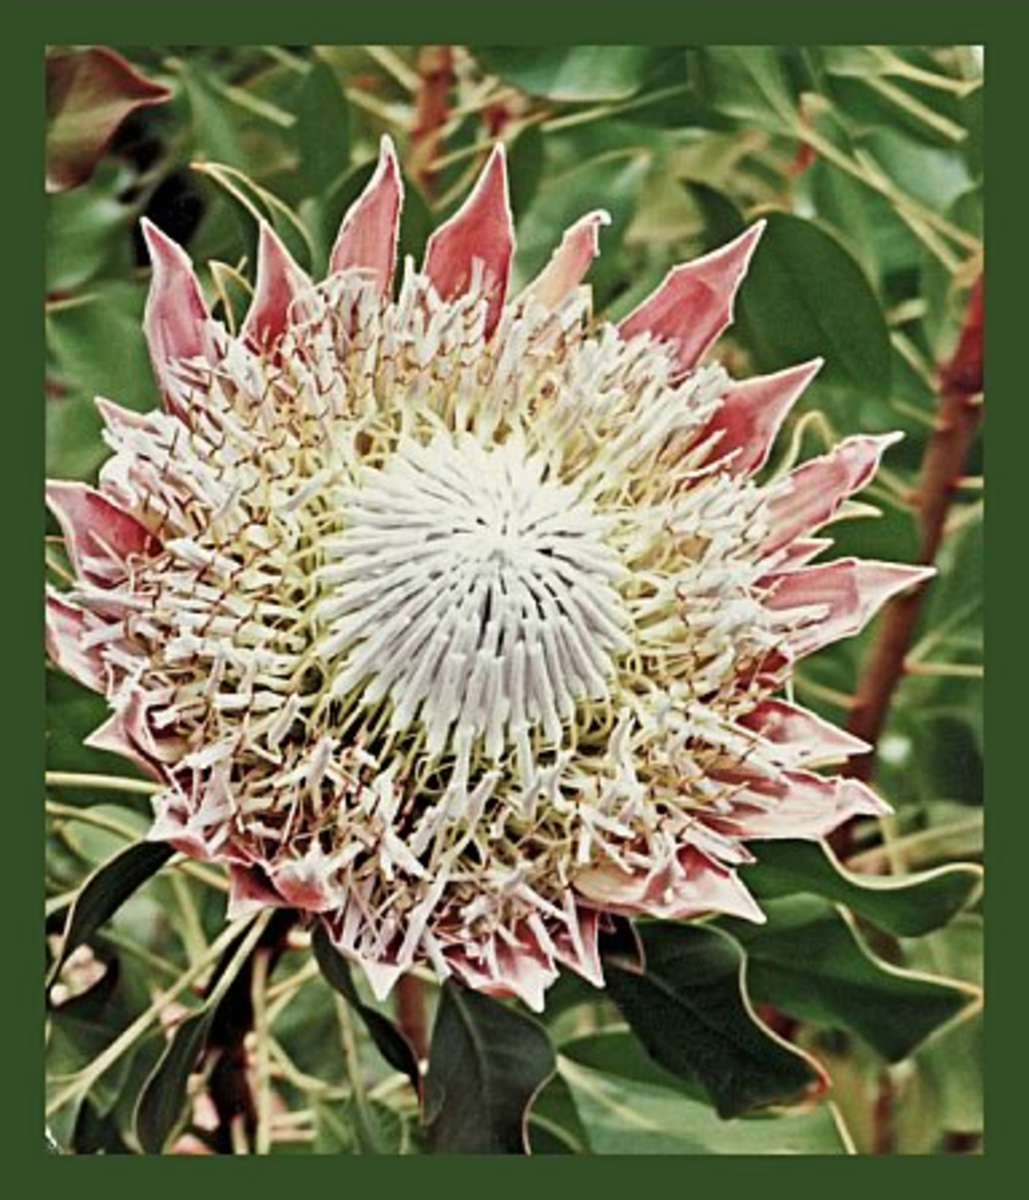 While stopping for lunch, visit the Protea Flower farm on Maui and take some excellent photos!